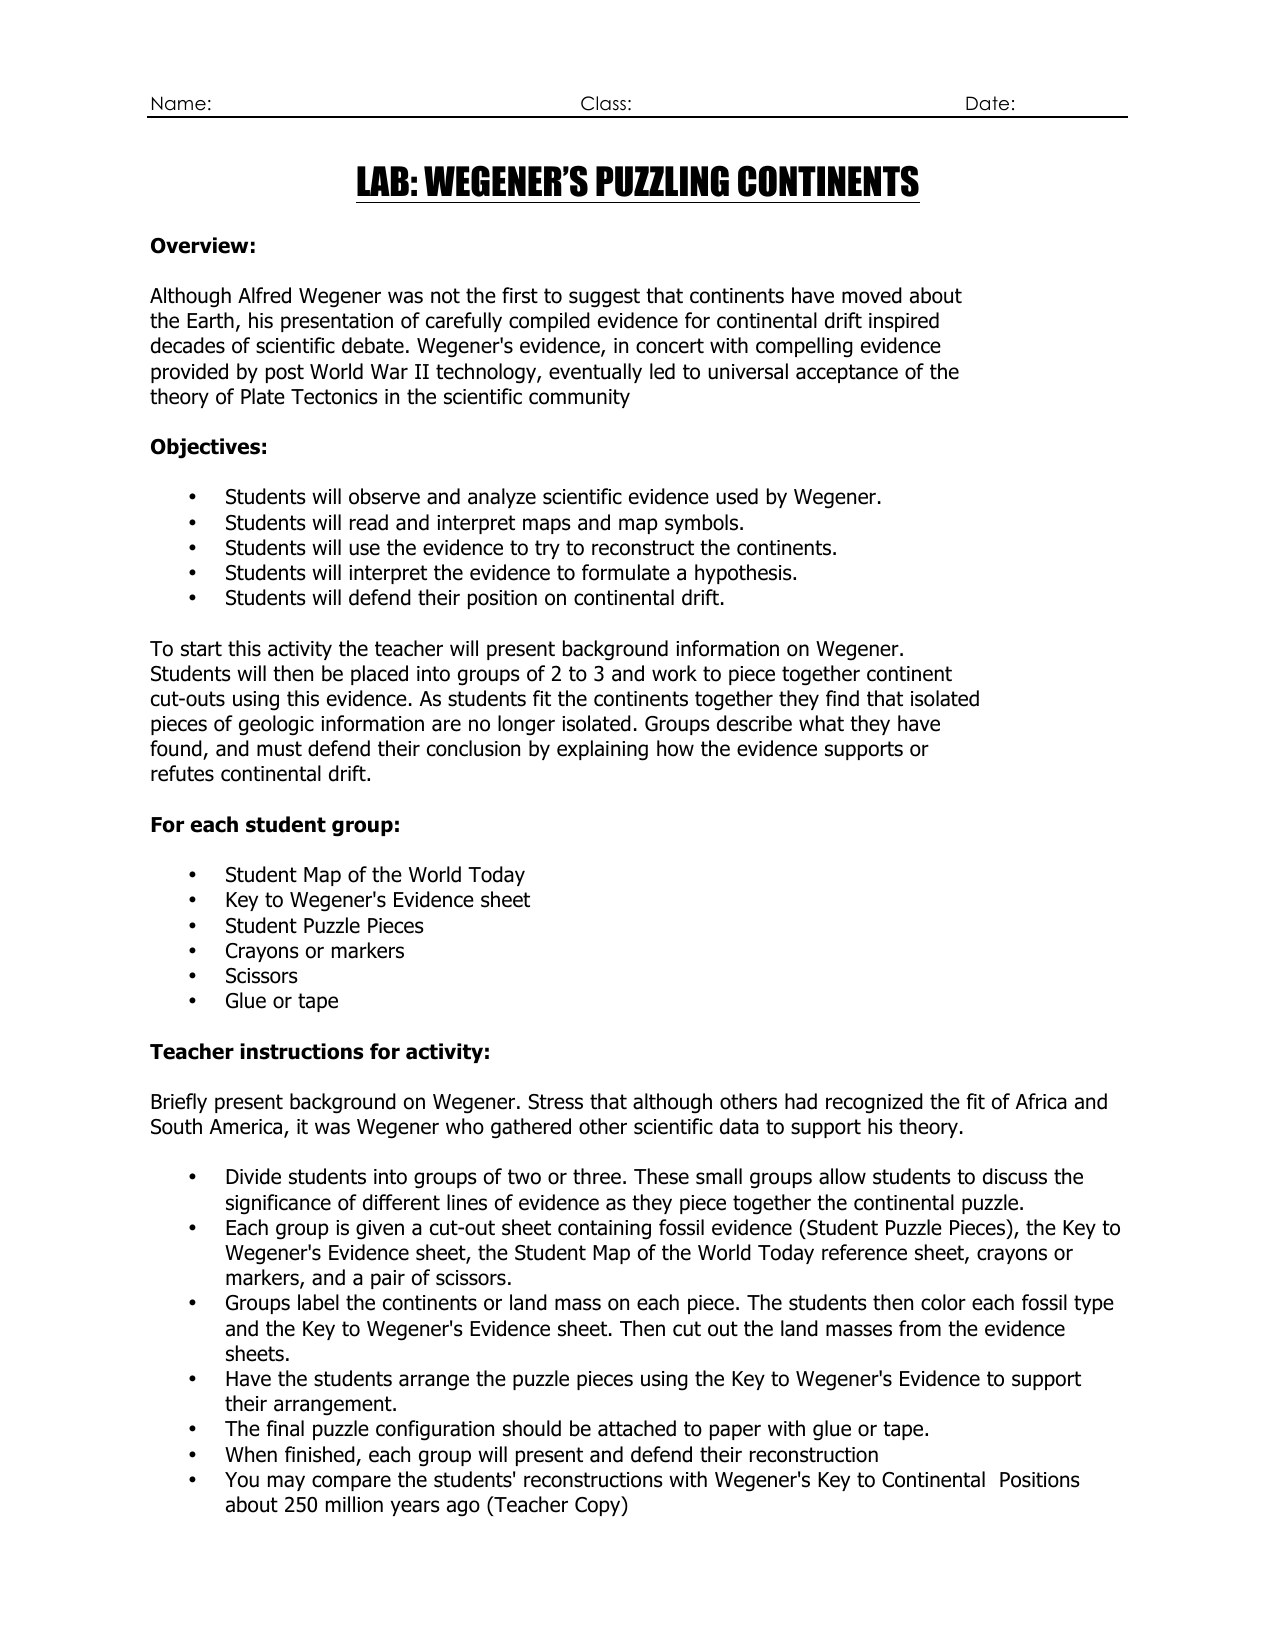 Drifting Continents Worksheet Answers